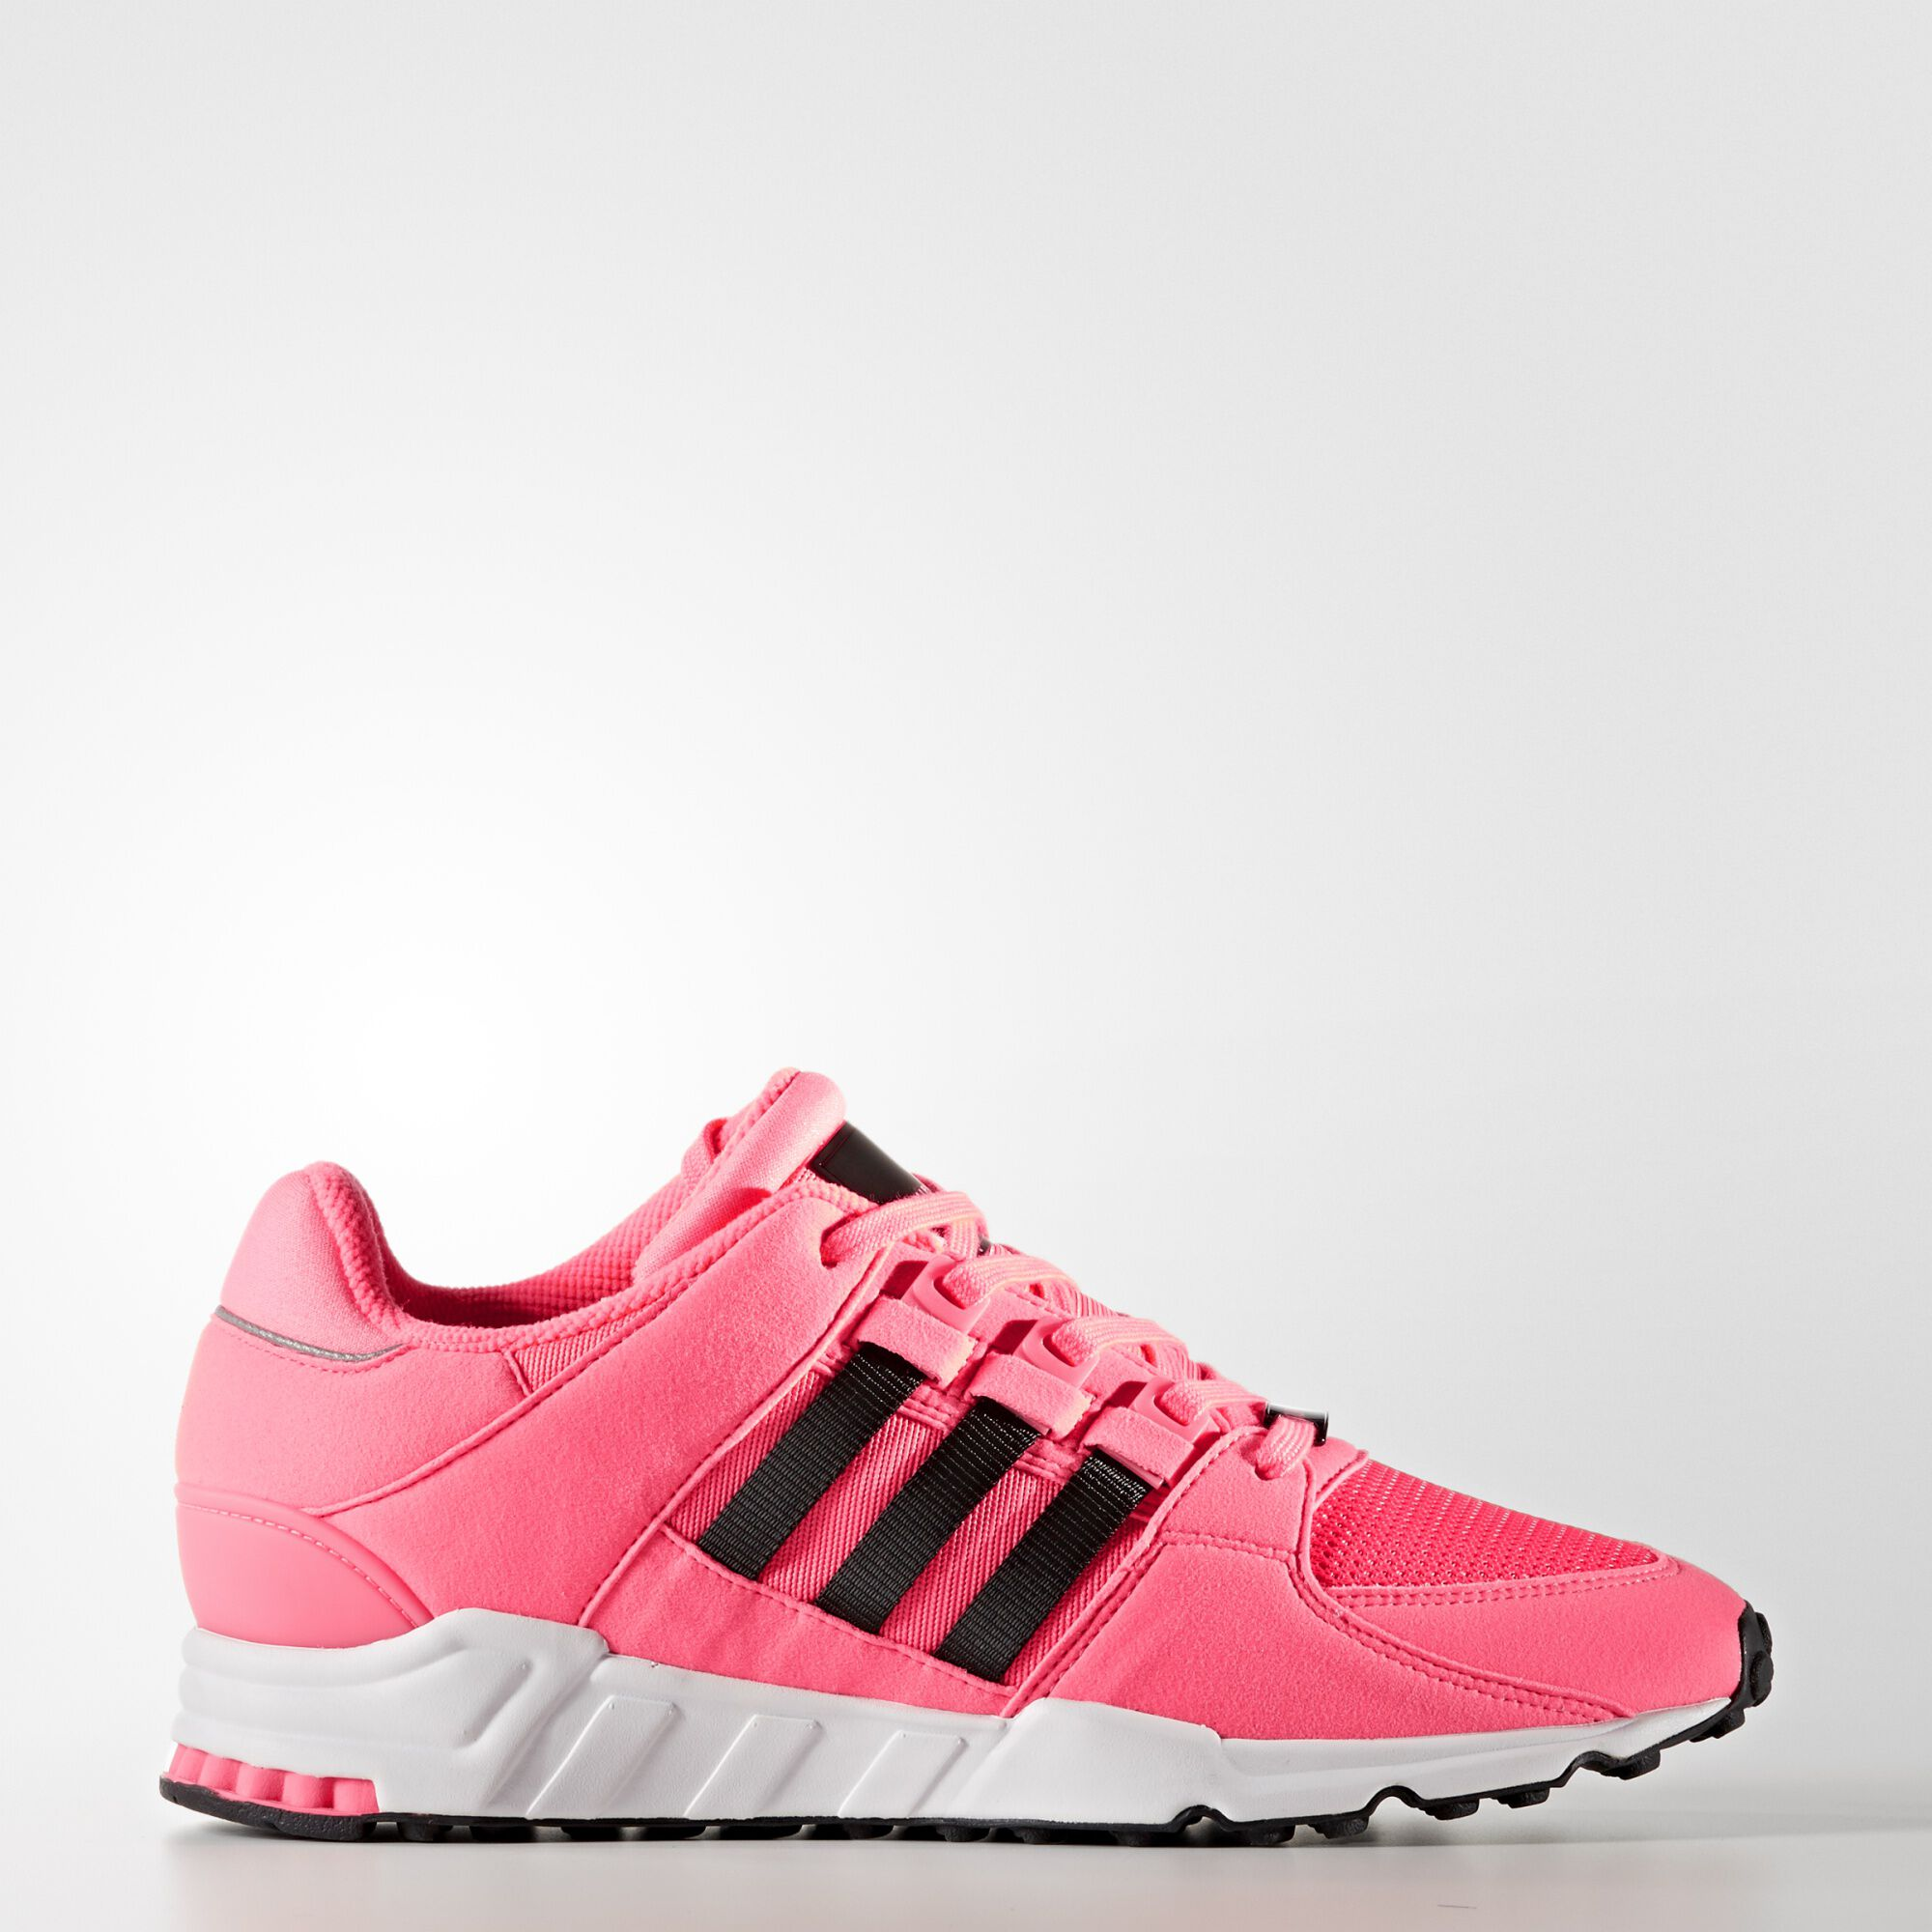 adidas EQT Re edition Team Bag Black adidas Ireland